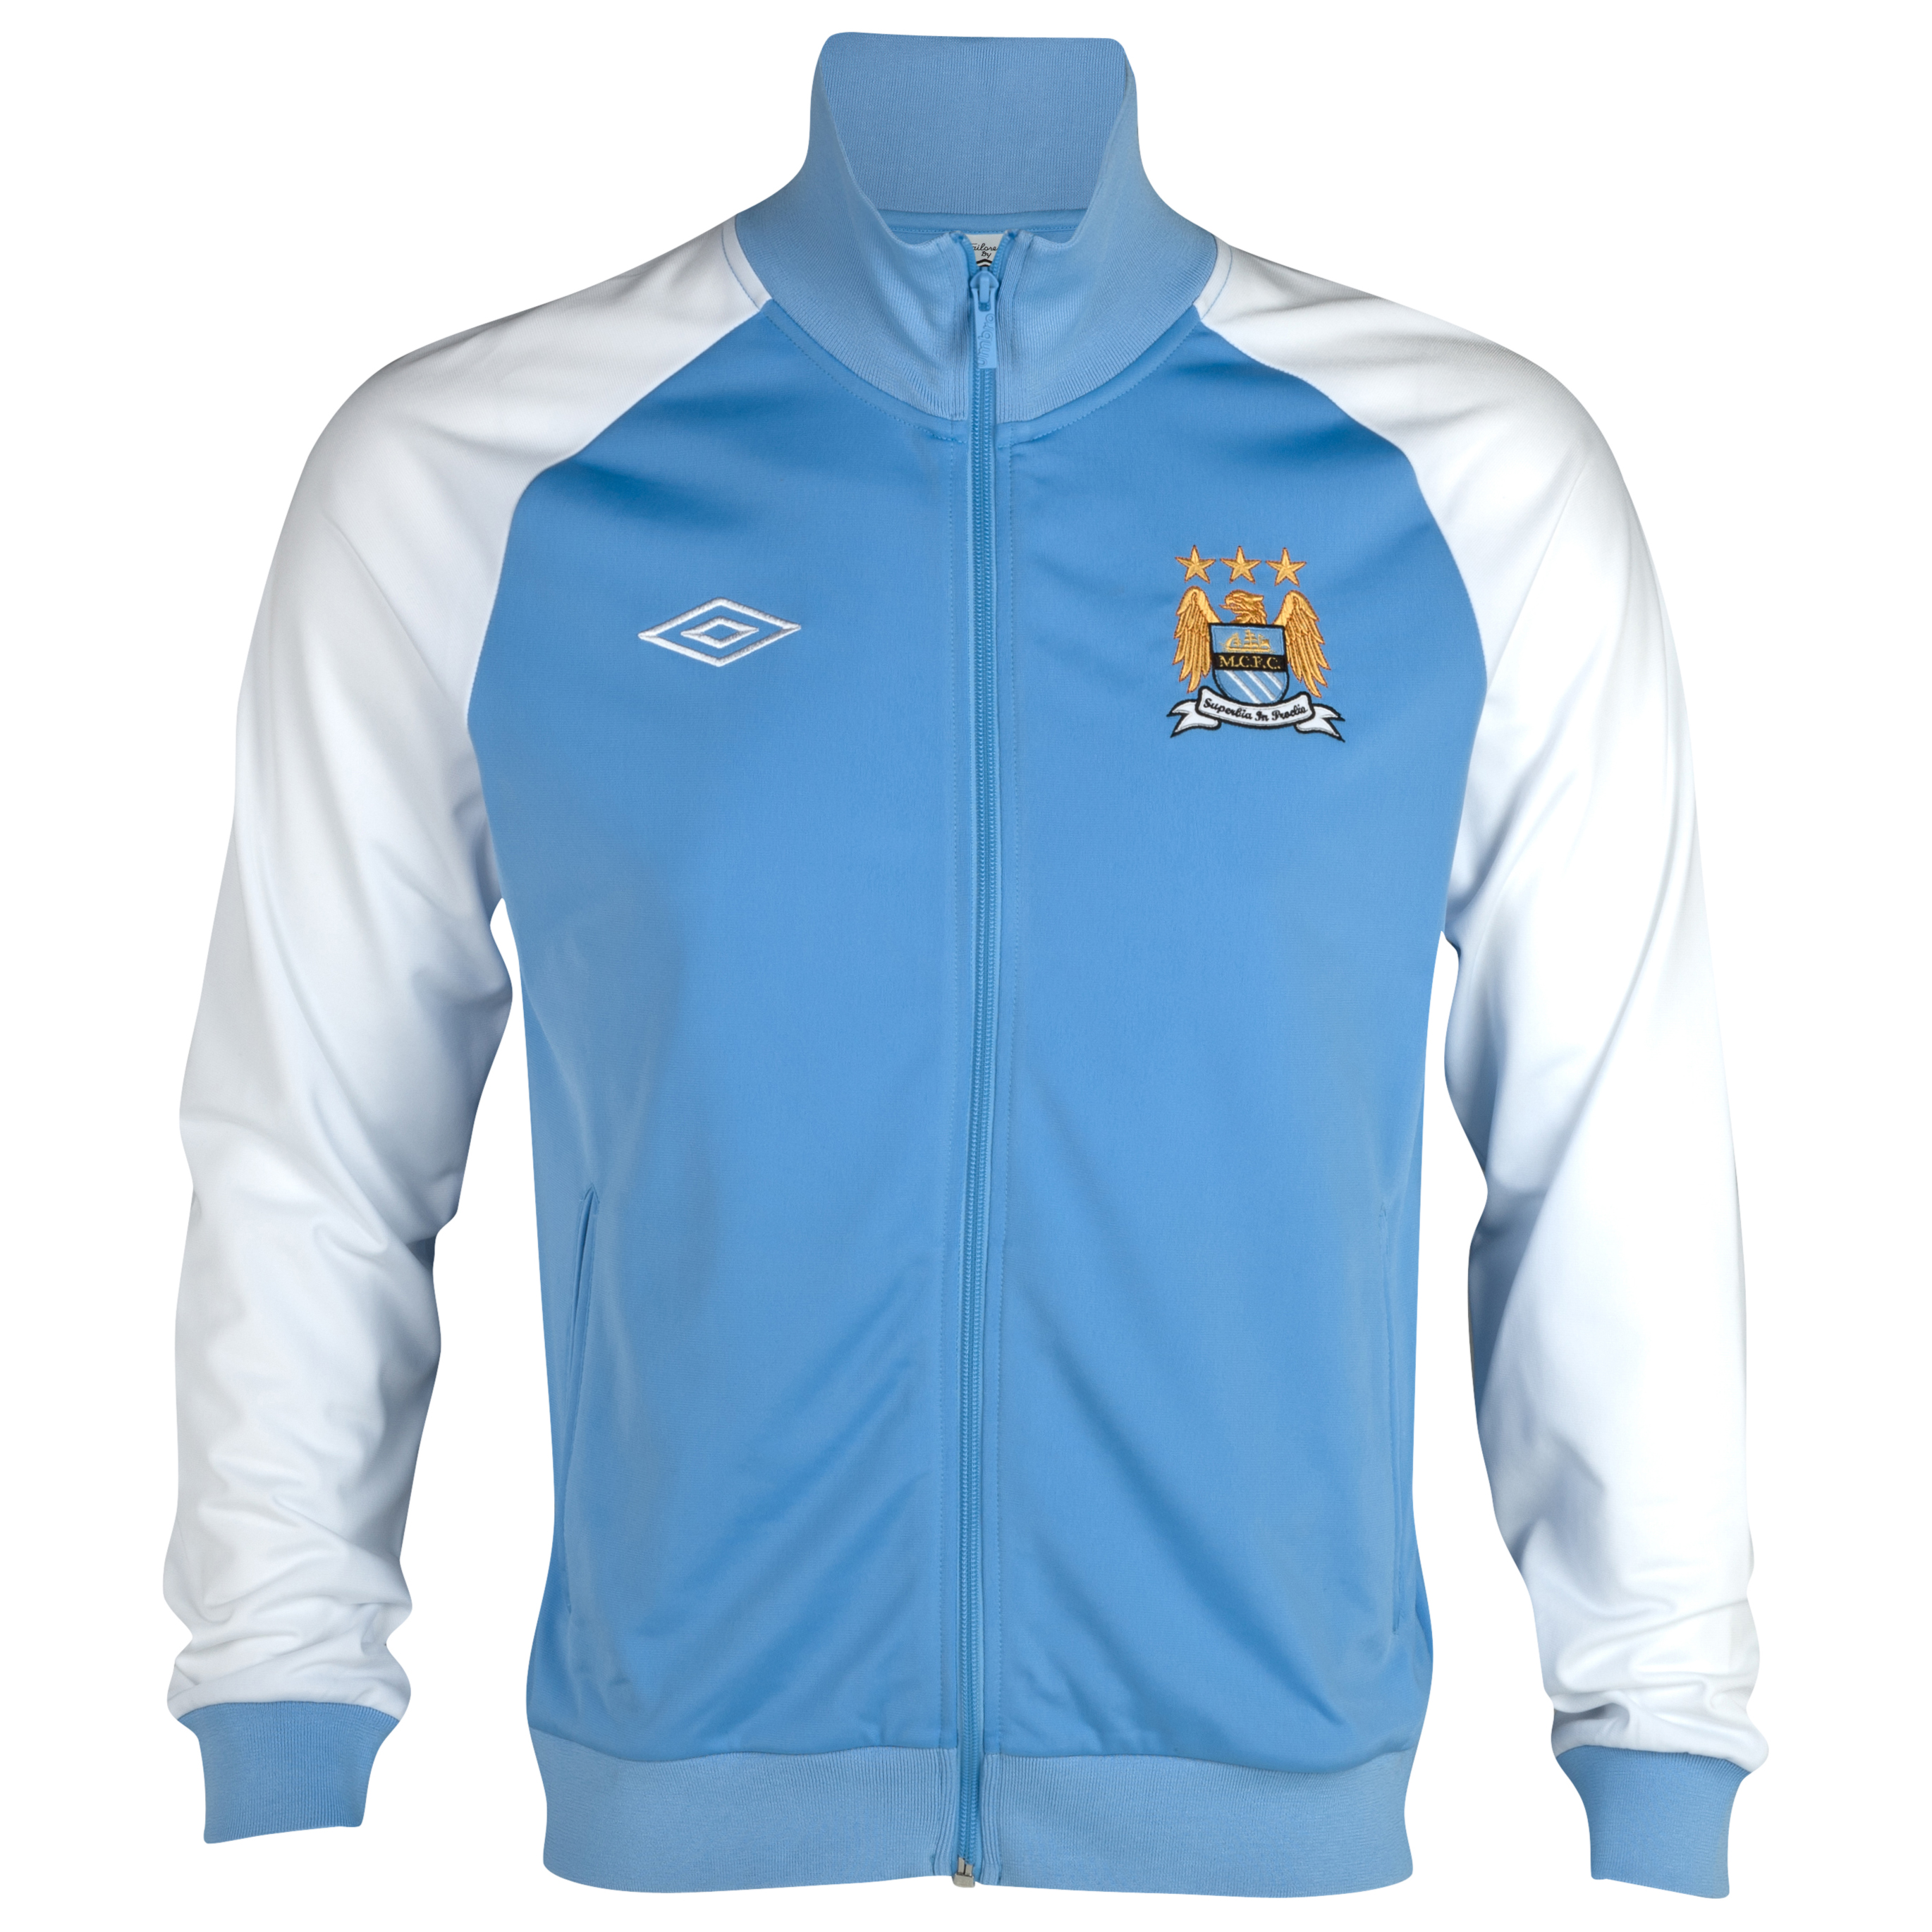 Manchester City WTC Track Jacket - Vista Blue / White